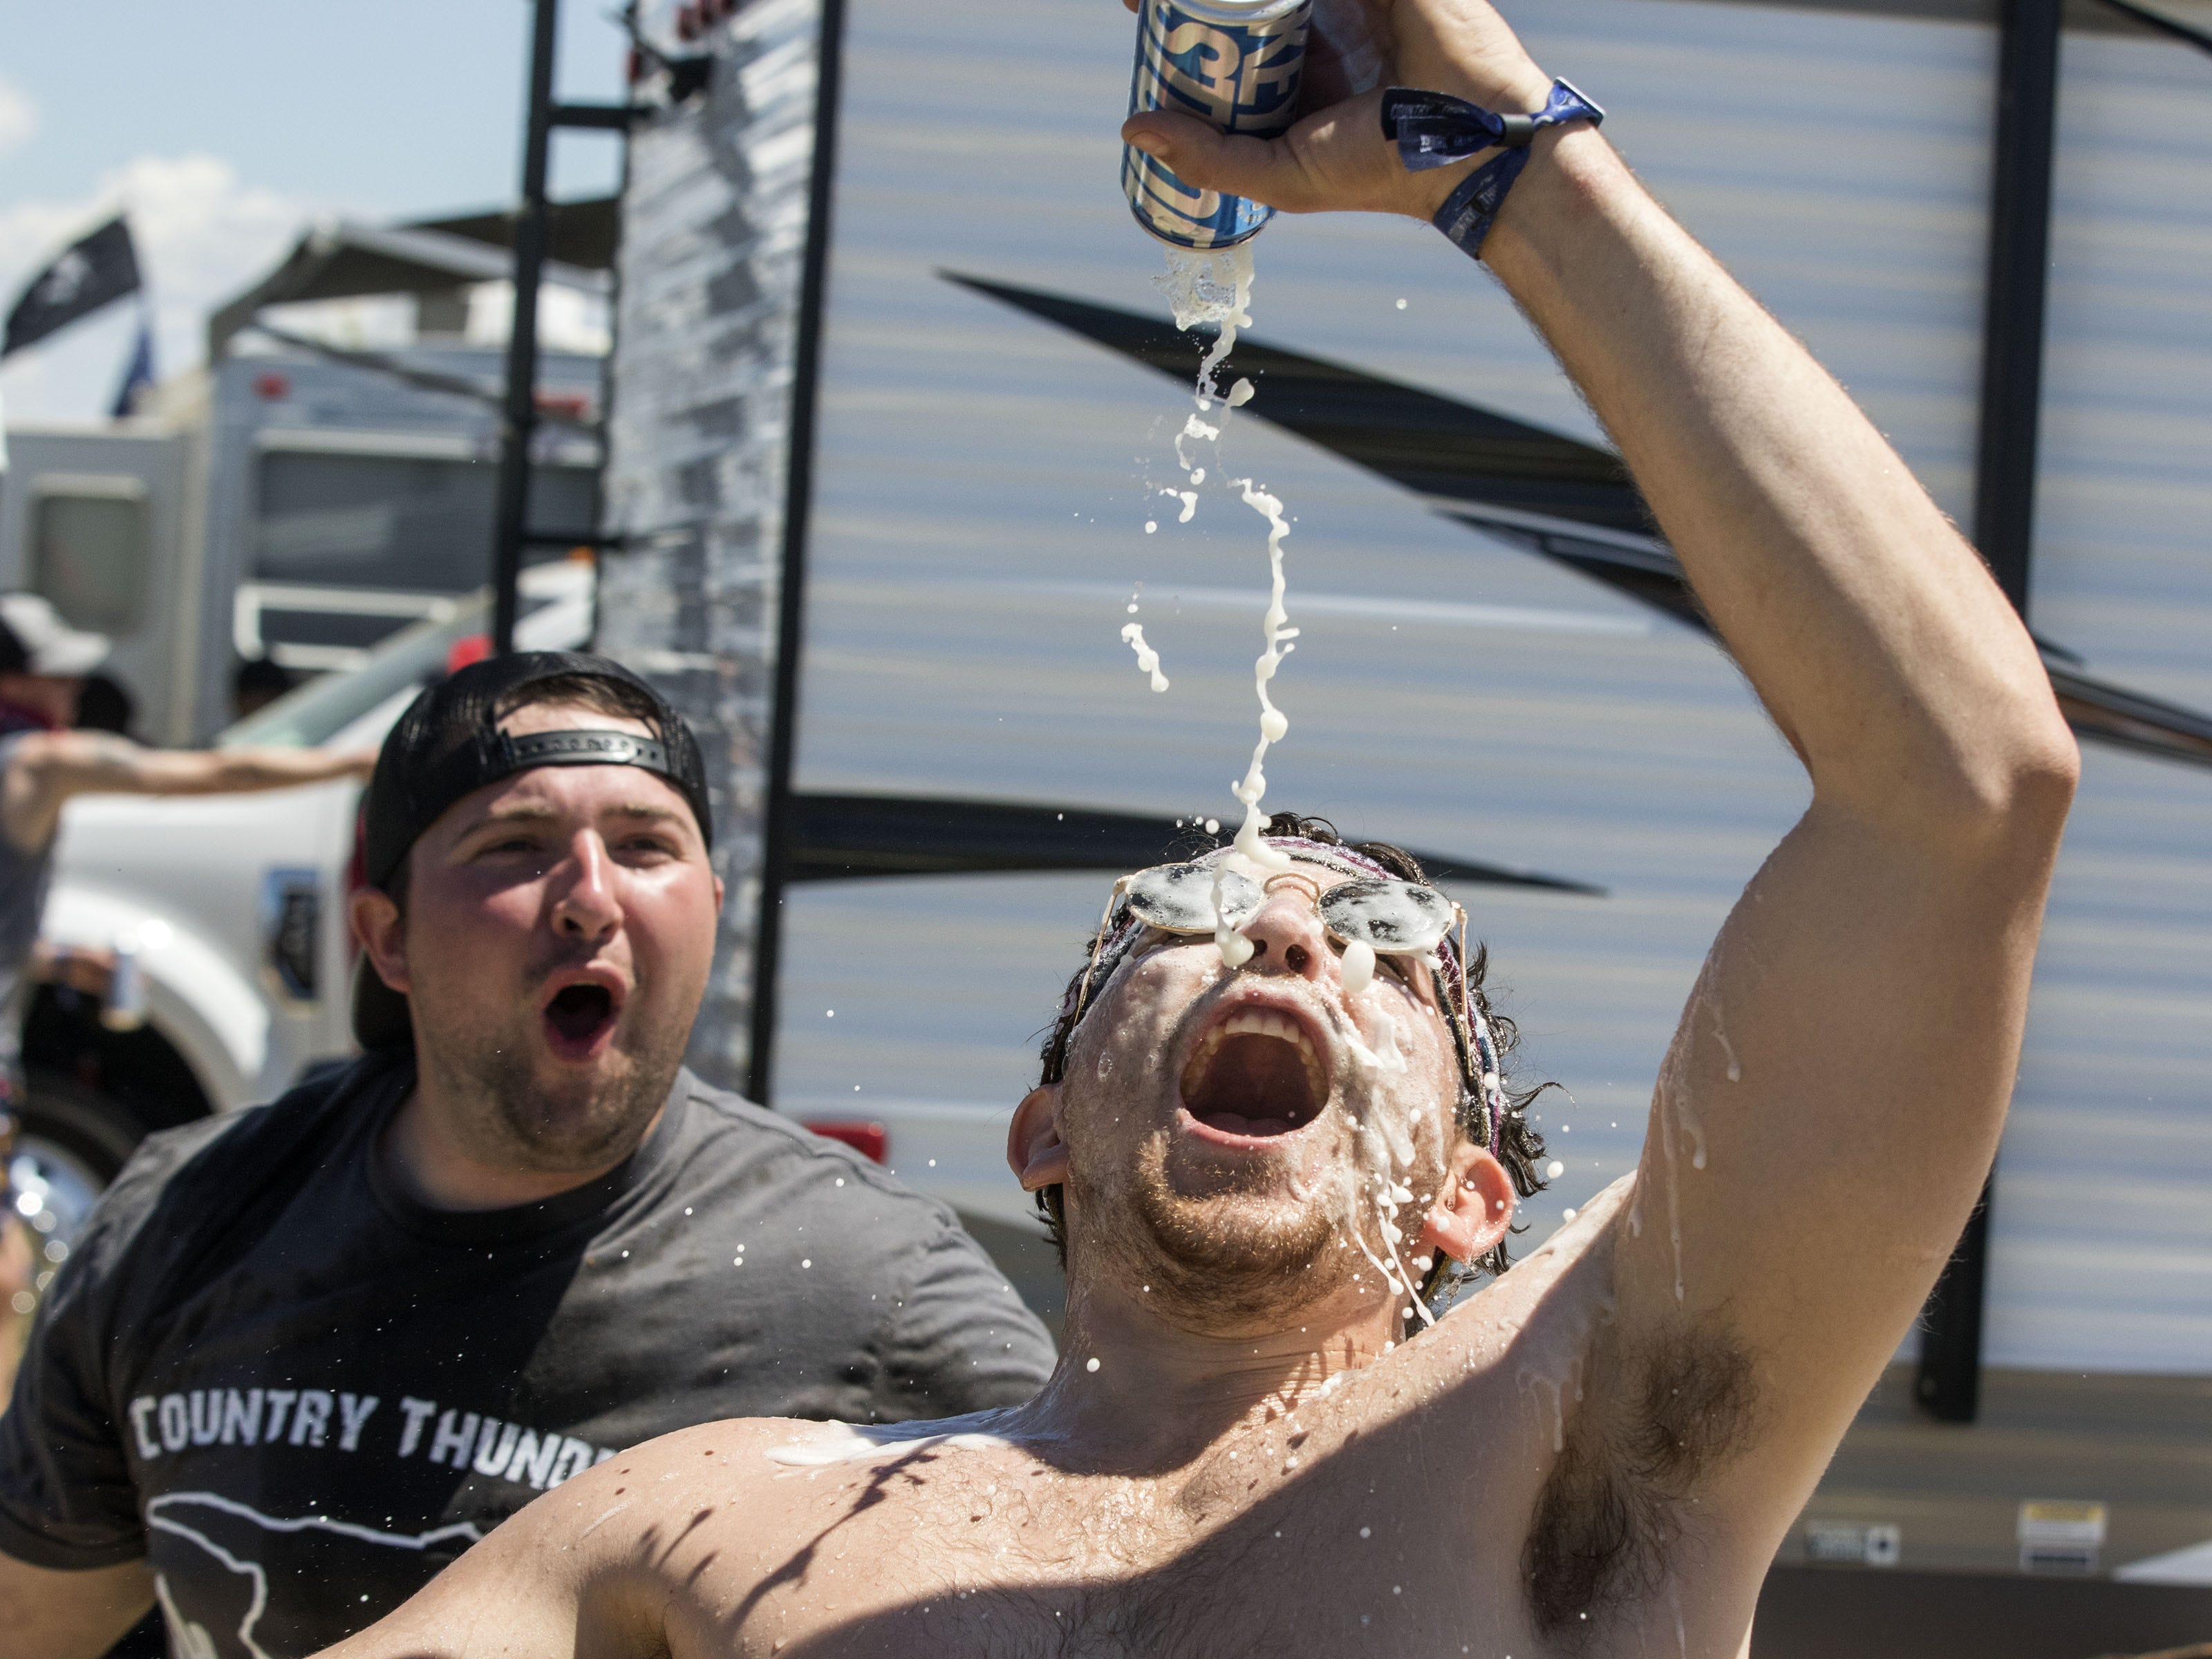 Brett Goetz of Phoenix watches as Coty Cruse of Flagstaff gives himself a beer shower during Country Thunder Arizona Friday, April 13, 2019, in Florence, Ariz.